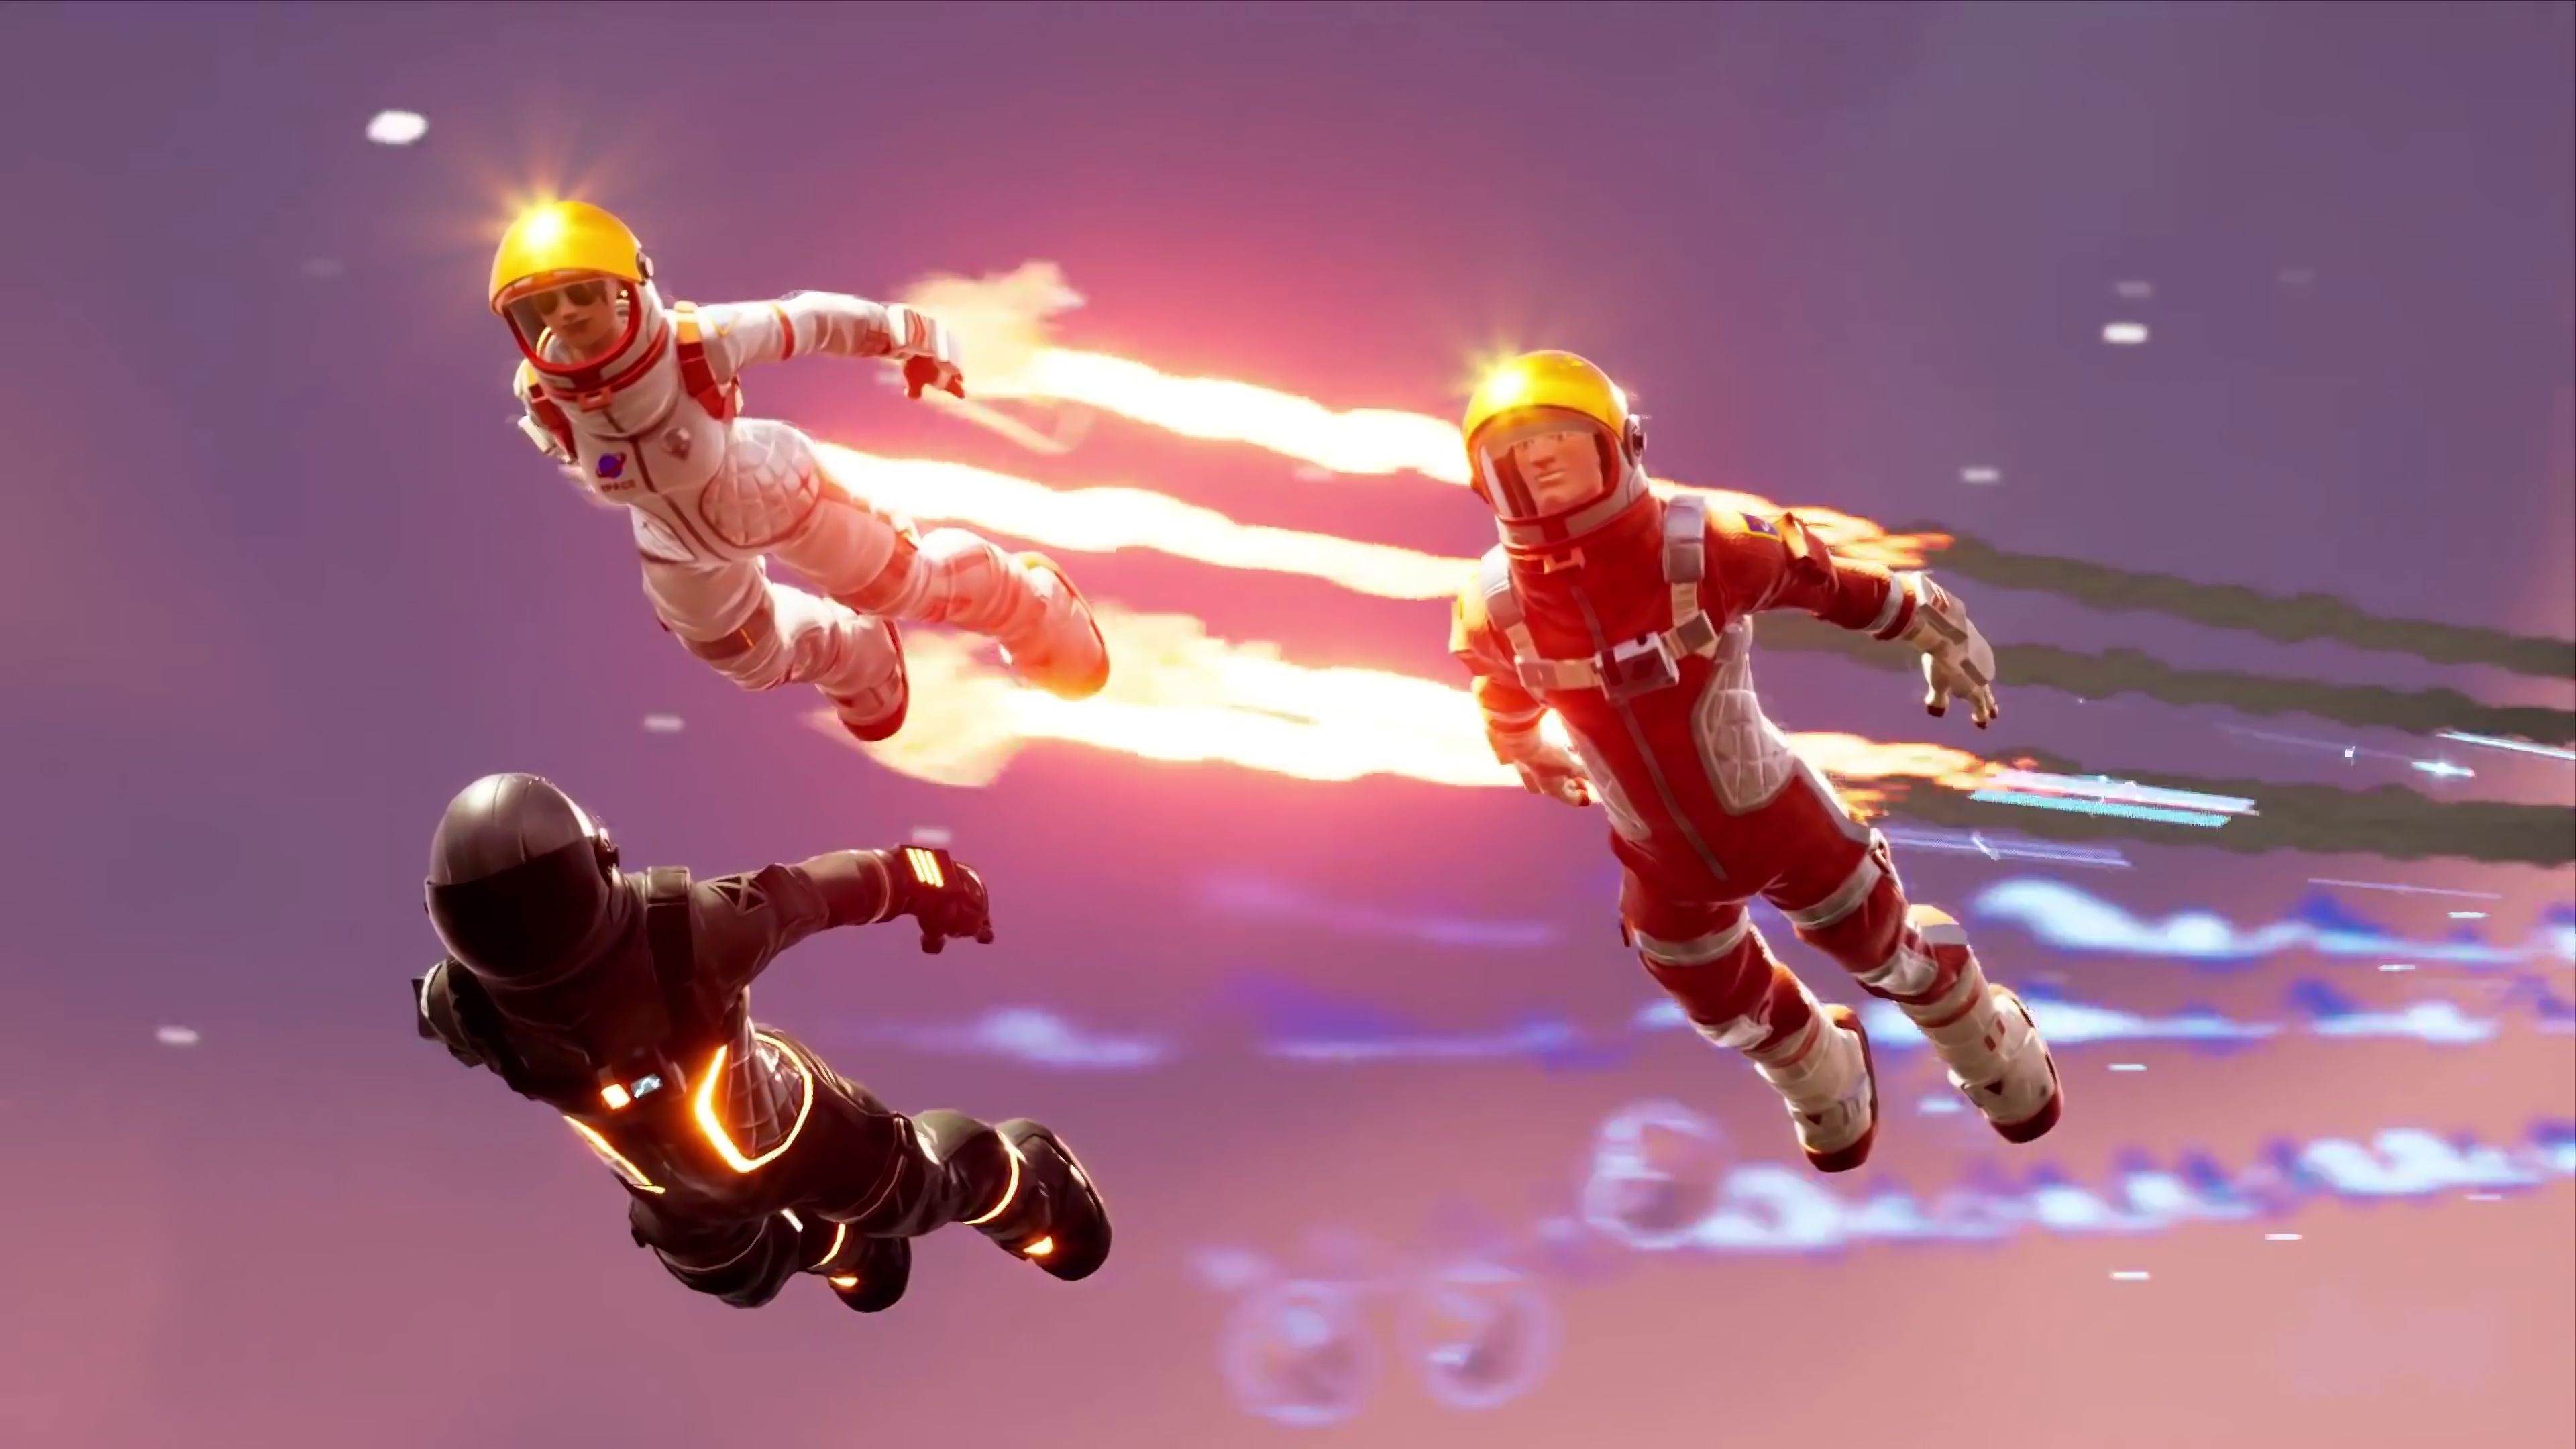 14] Mission Specialist Fortnite Wallpapers on WallpaperSafari 3840x2160